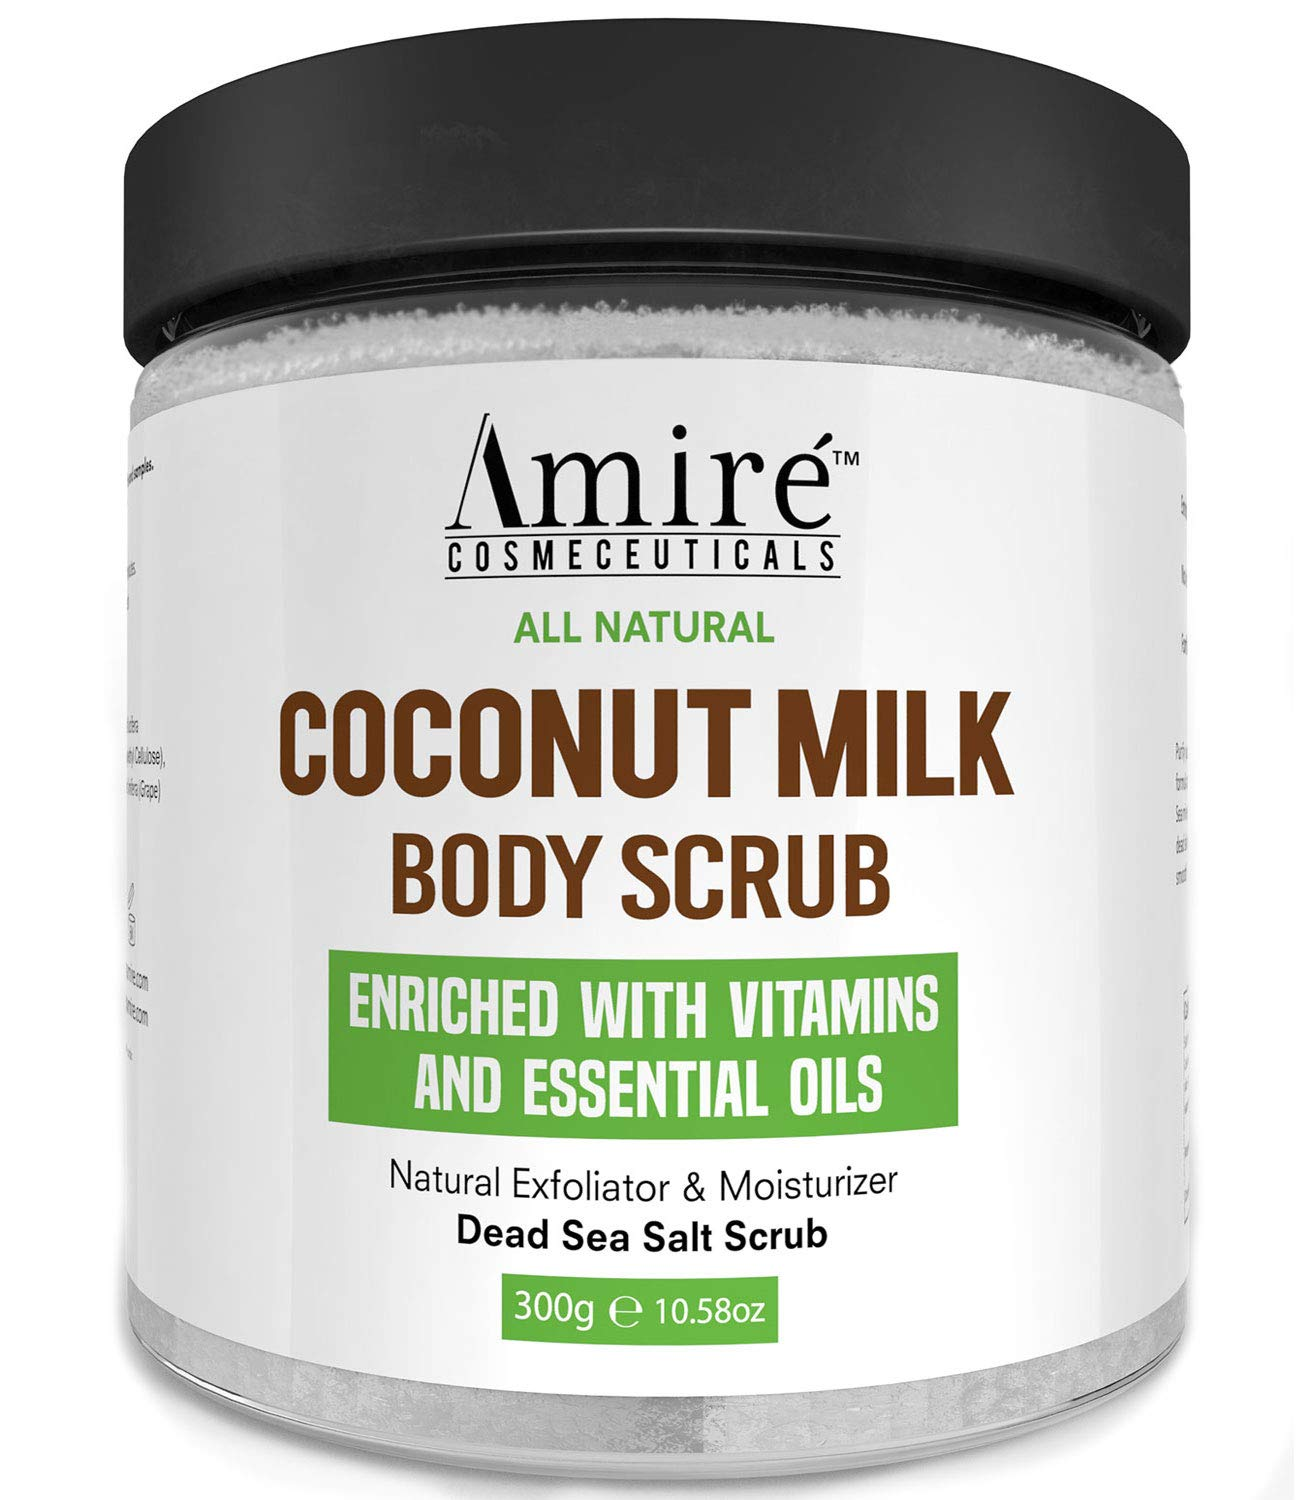 Coconut Milk Scrub For Body And Face - 100% Pure Dead Sea Salt Exfoliating and Moisturizing Scrub For Cellulite Stretch Marks, Acne and Varicose Veins with Vitamin E, Shea Butter, Argan Oil